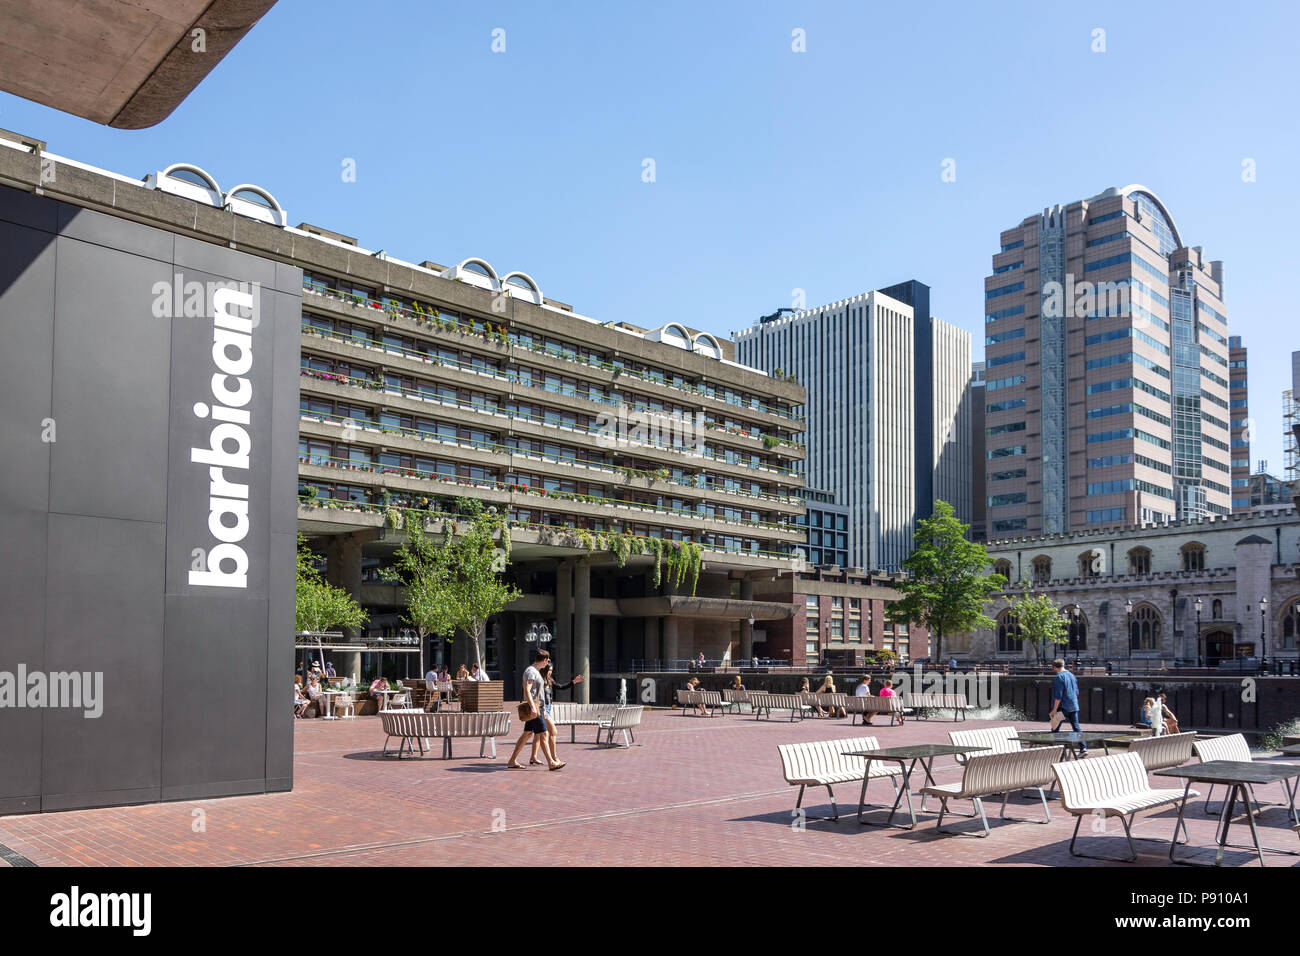 Lakeside Terrace, Barbican Estate, Barbican, City of London, Greater London, England, United Kingdom - Stock Image